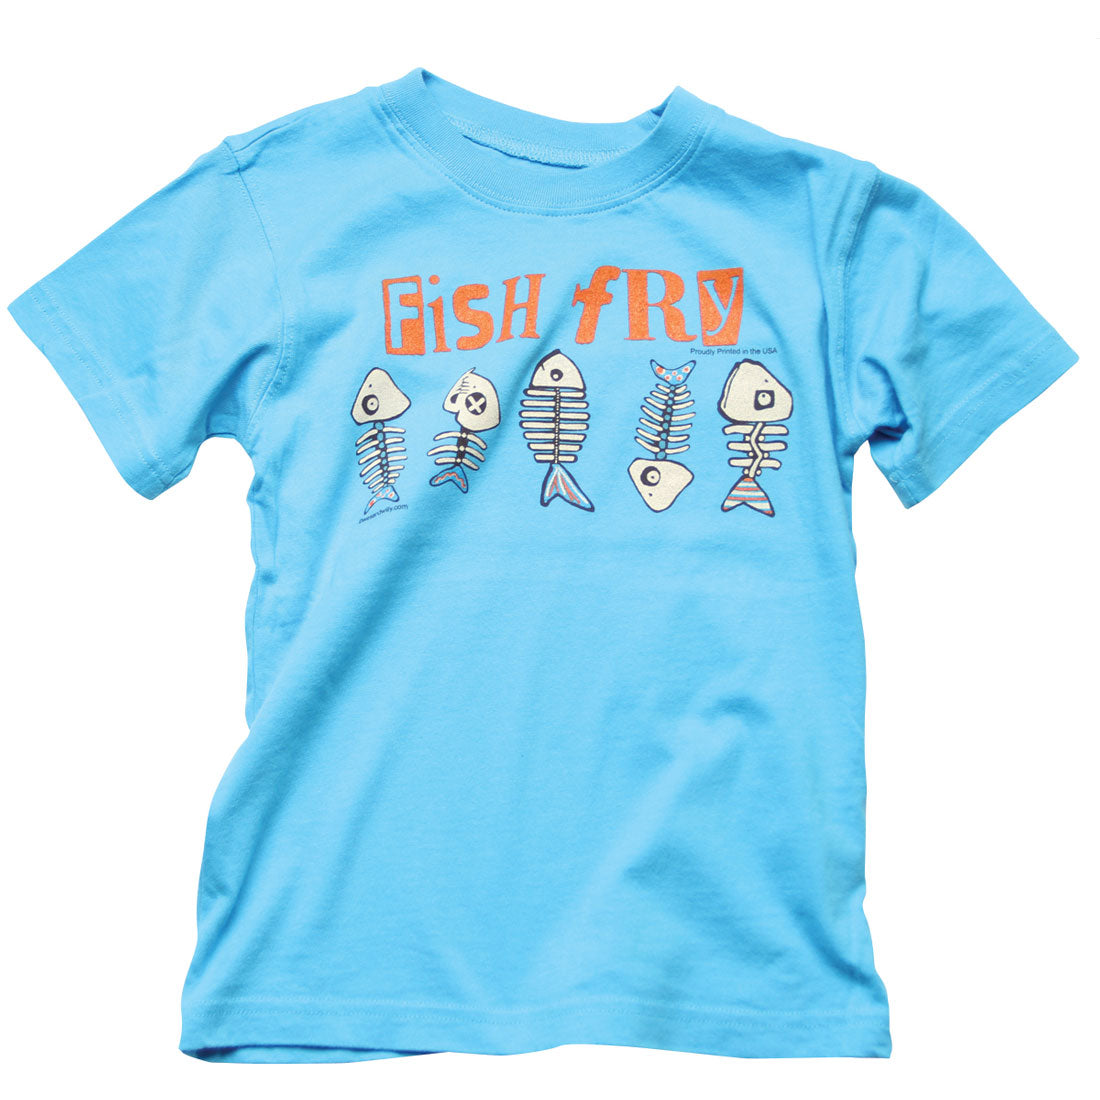 Boys Fish Fry Shirt by Wes and Willy